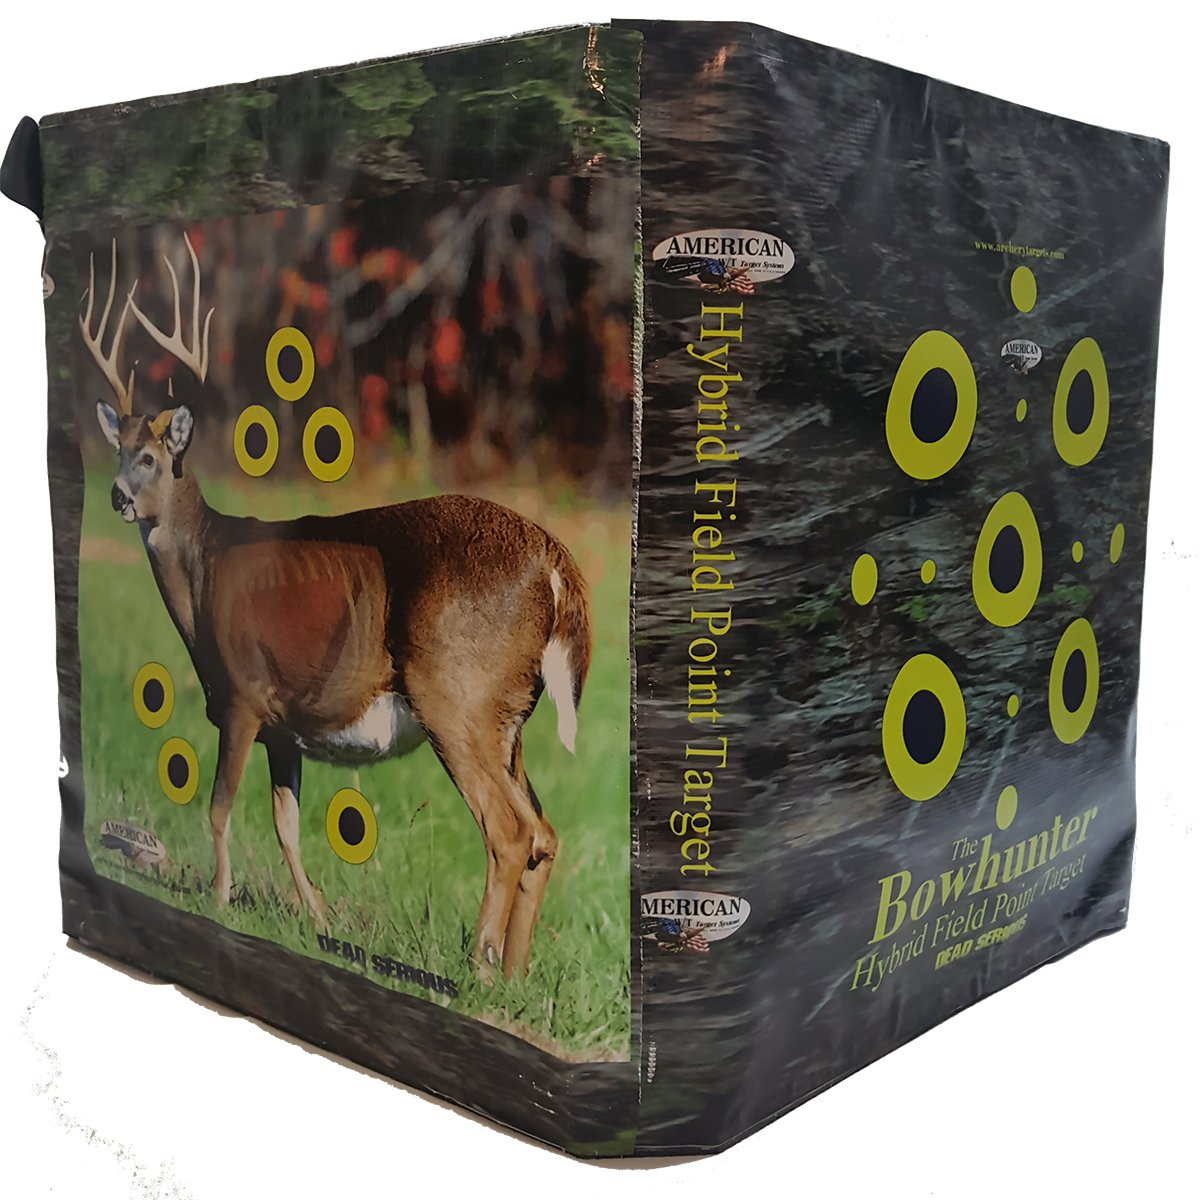 American Whitetail BowHunter Competition Cube Archery Target, Black